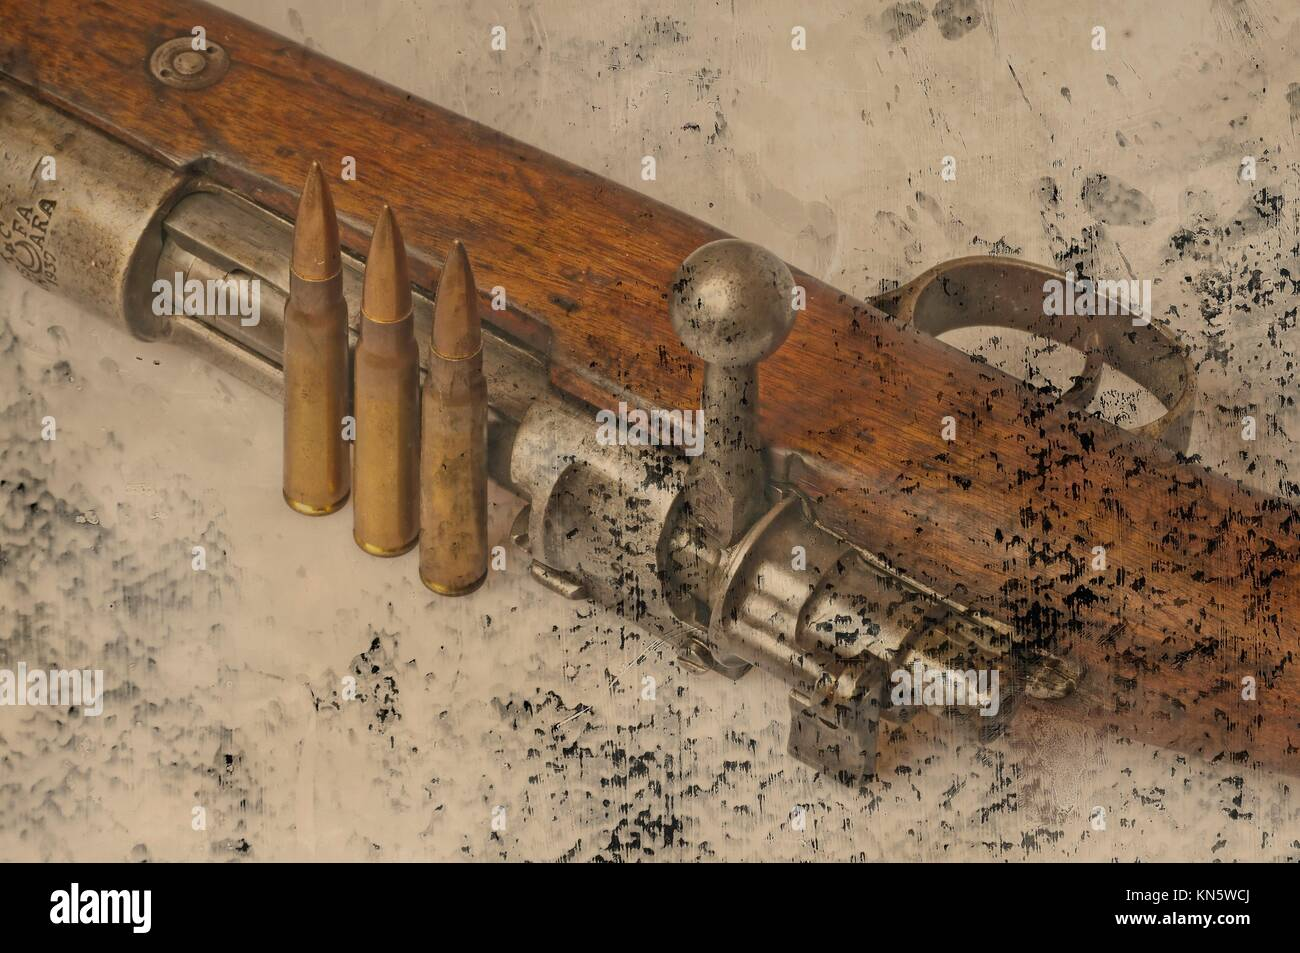 carbine with ammunition. - Stock Image